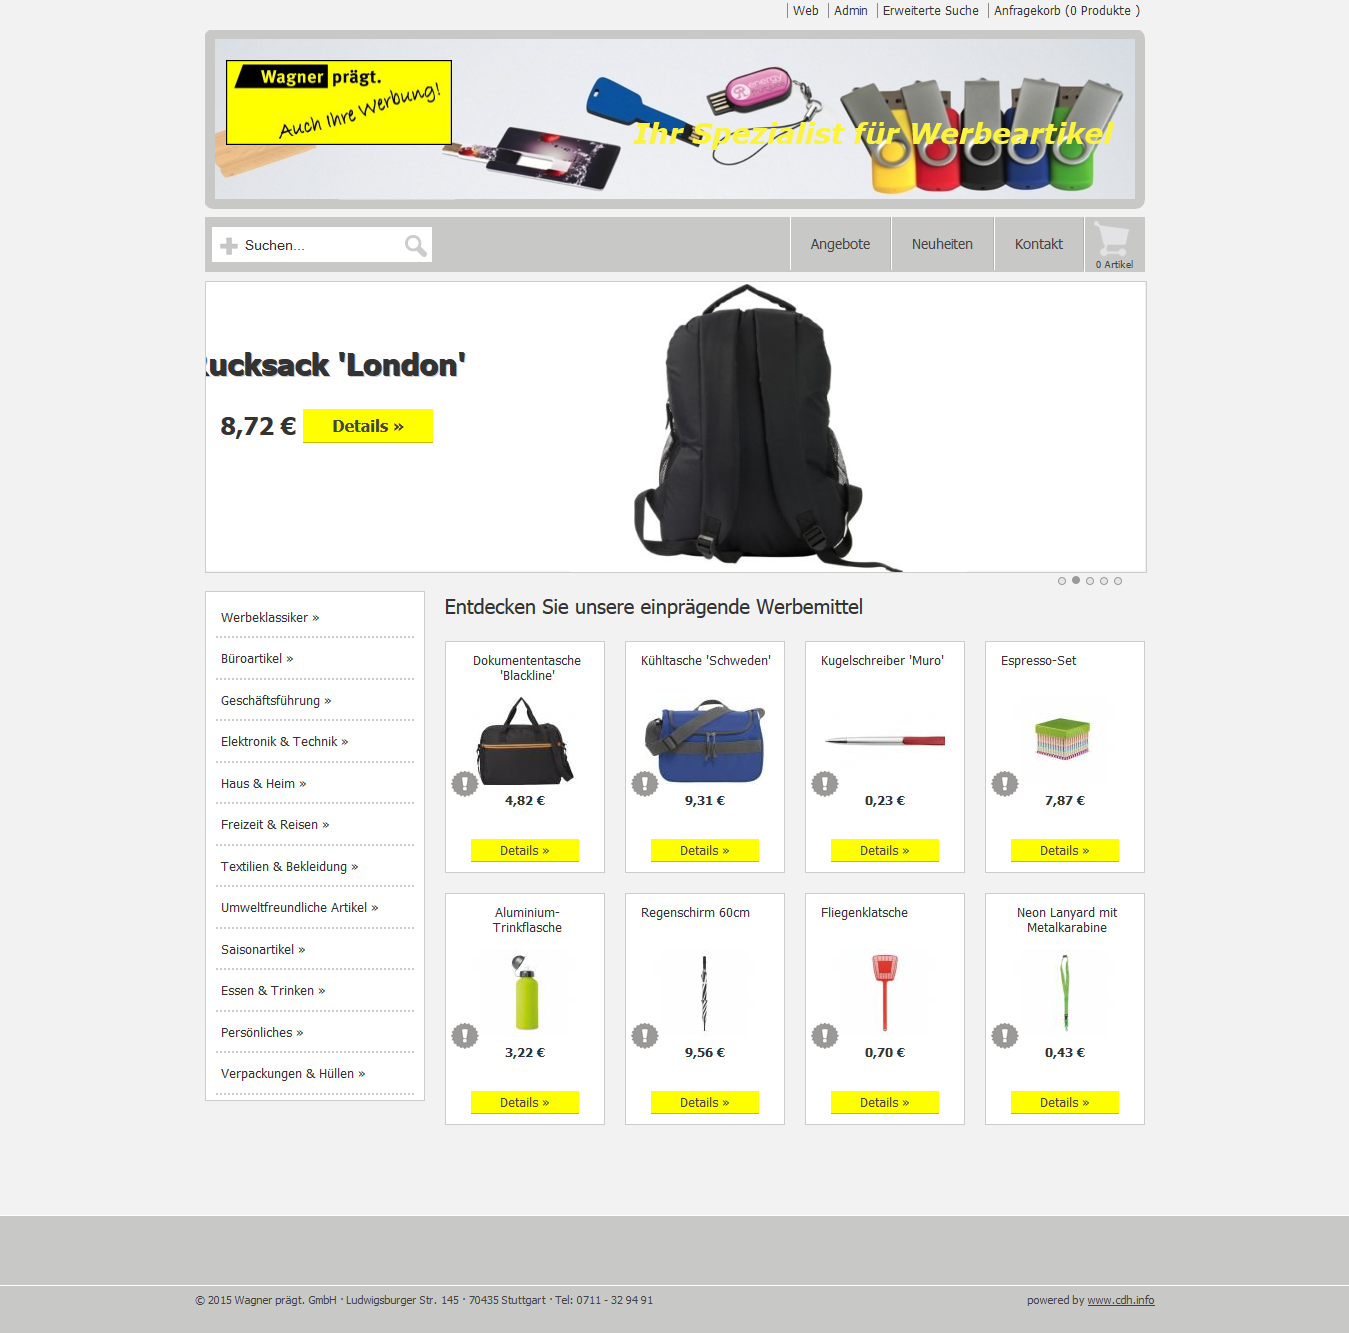 webshop_wagner_in